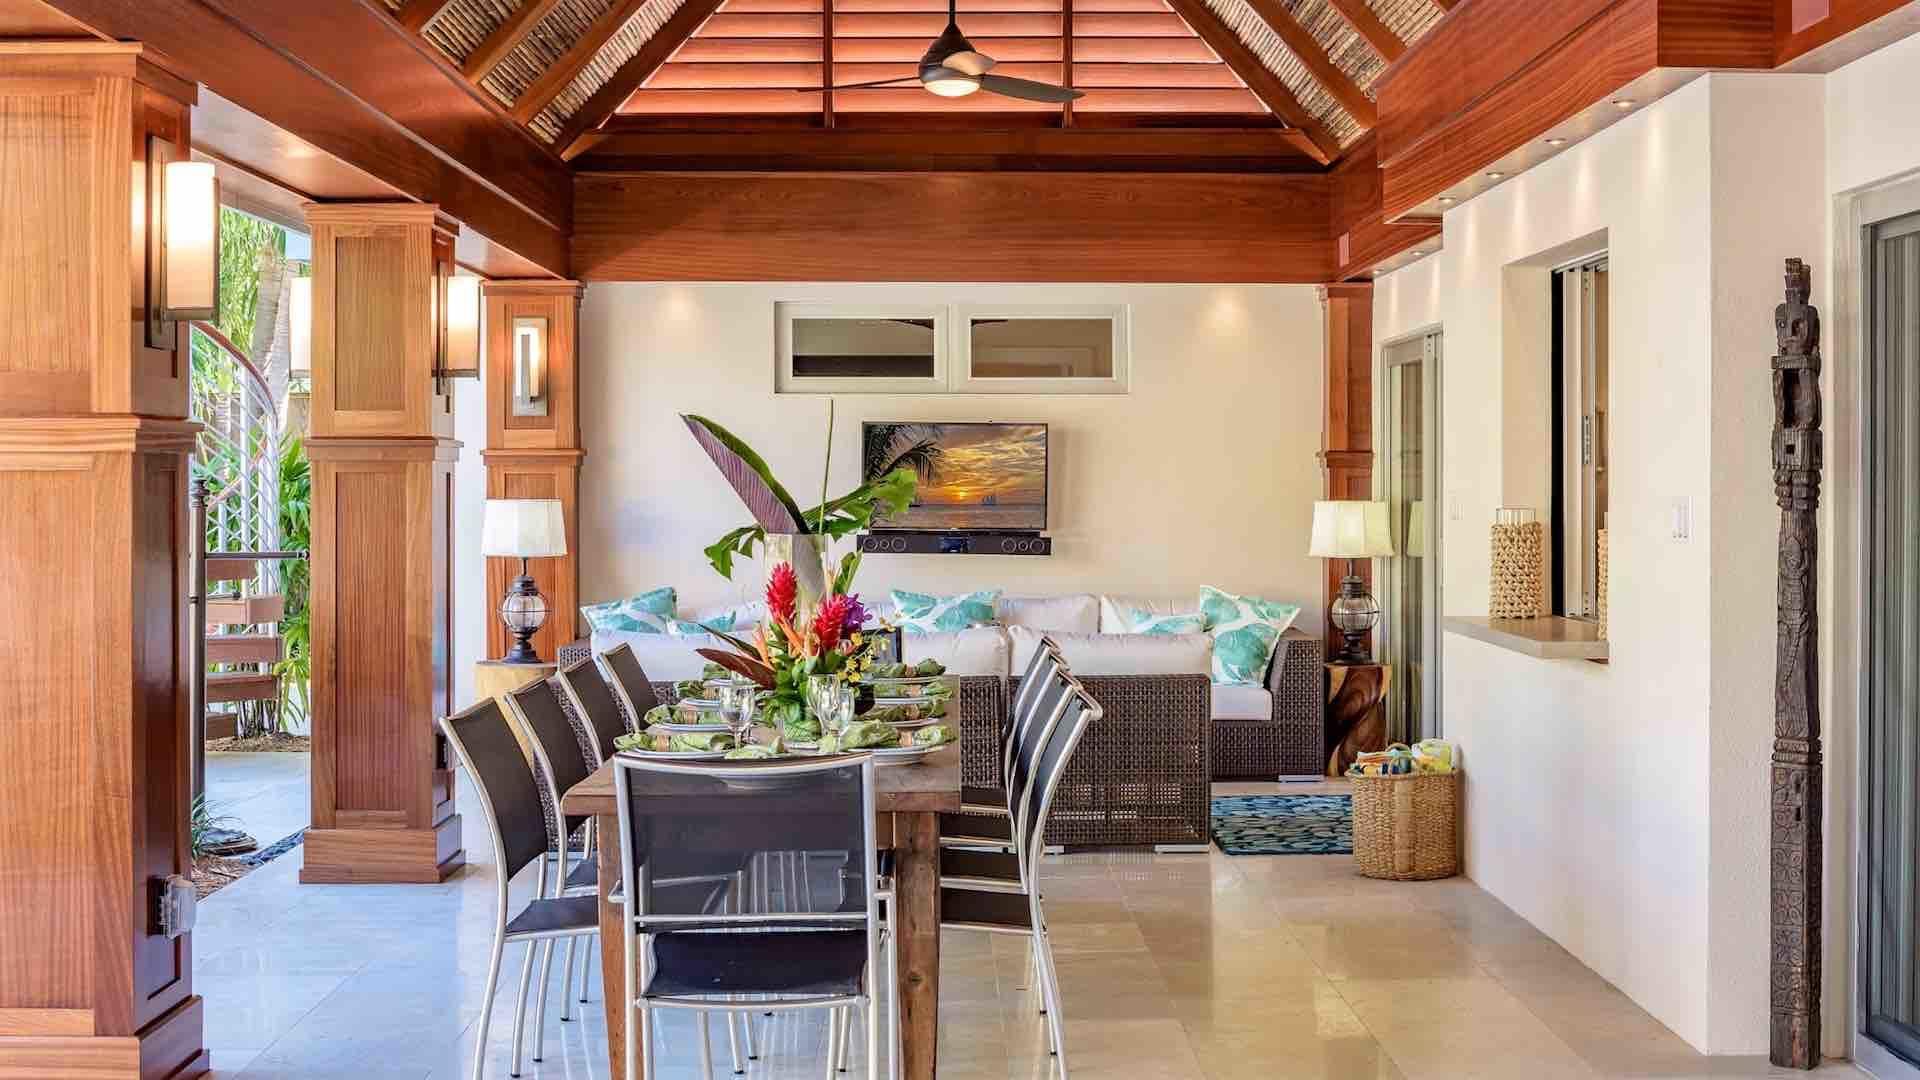 A covered lanai spans the entire length of the house with multiple lounging and dining areas...